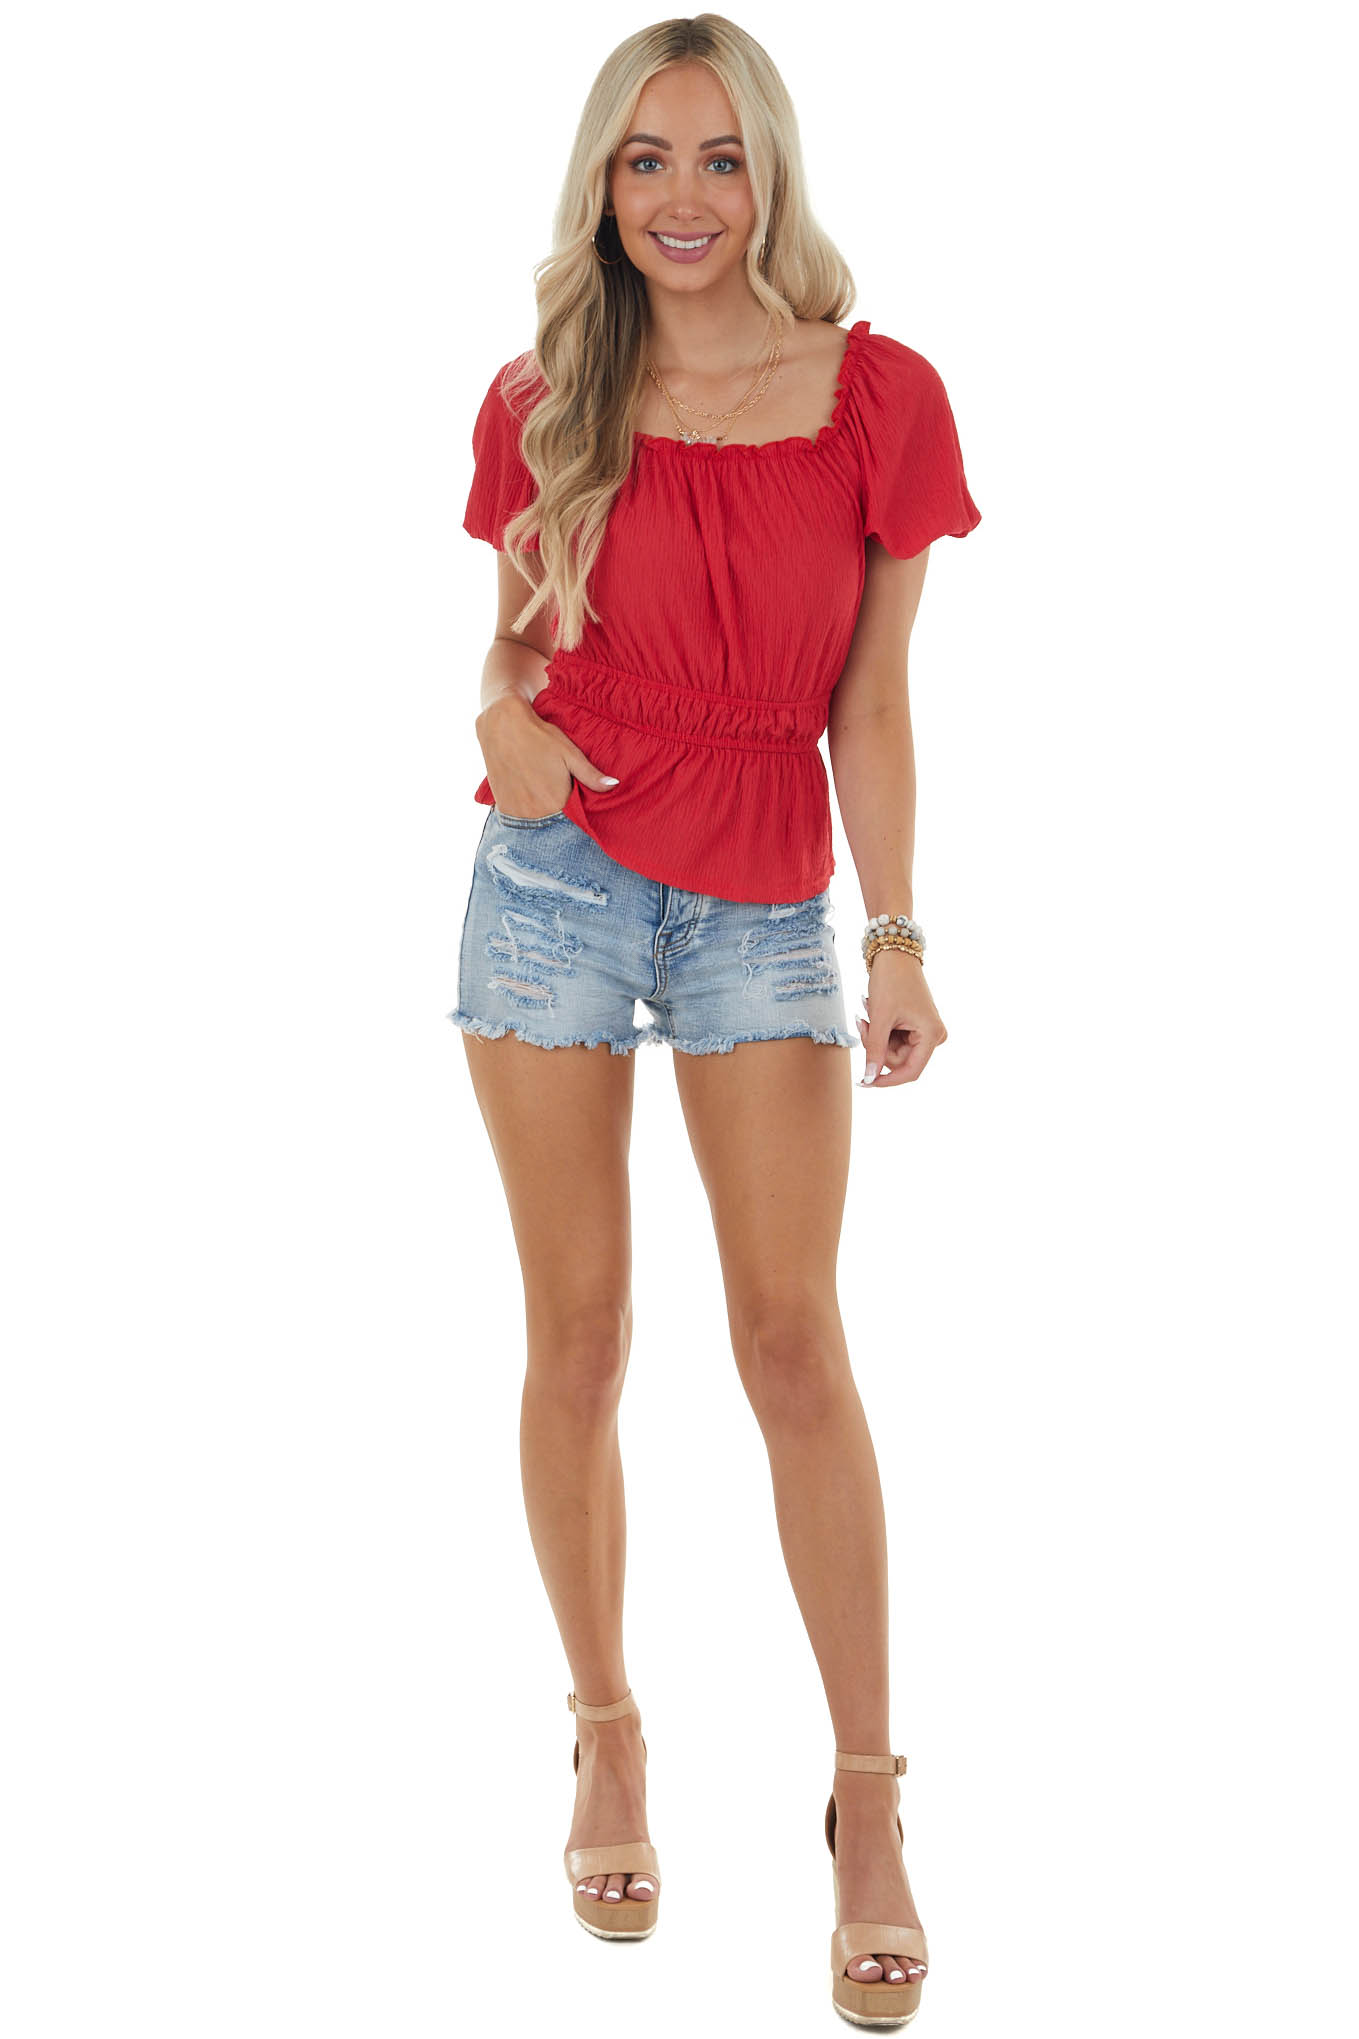 Lipstick Red Peplum Blouse with Short Sleeves and Ruffles